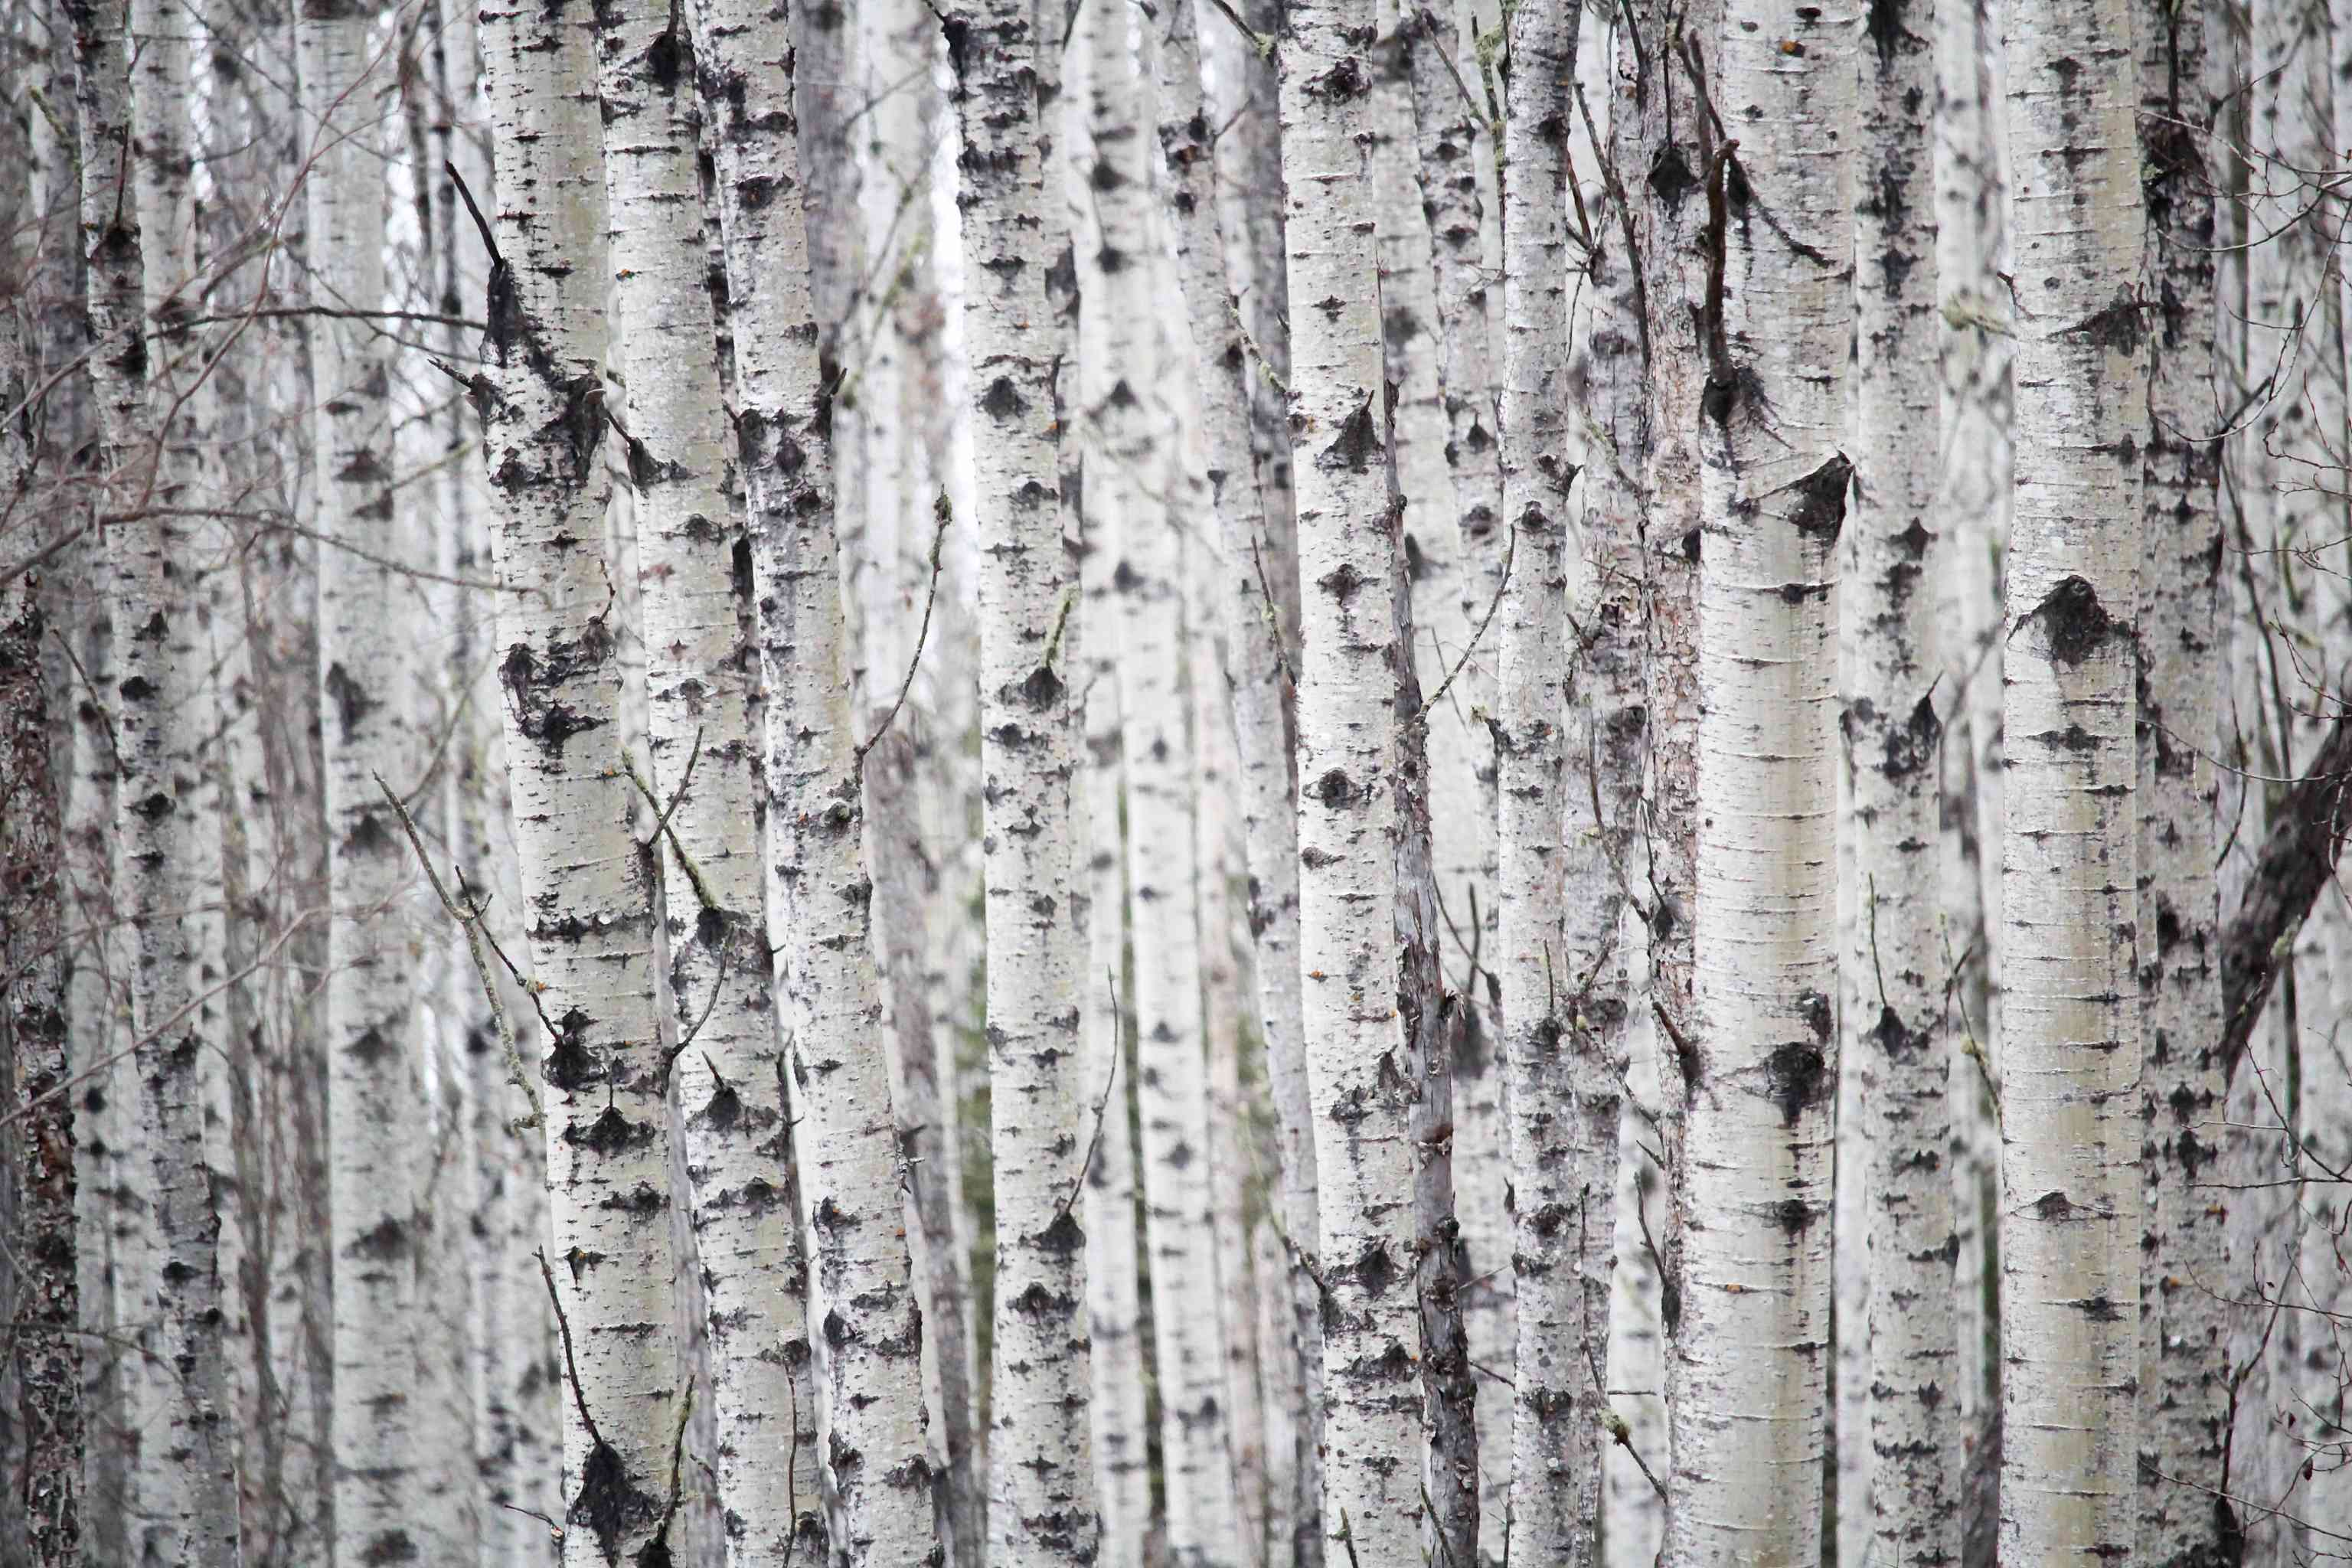 A grove of birch trees covered with lenticels